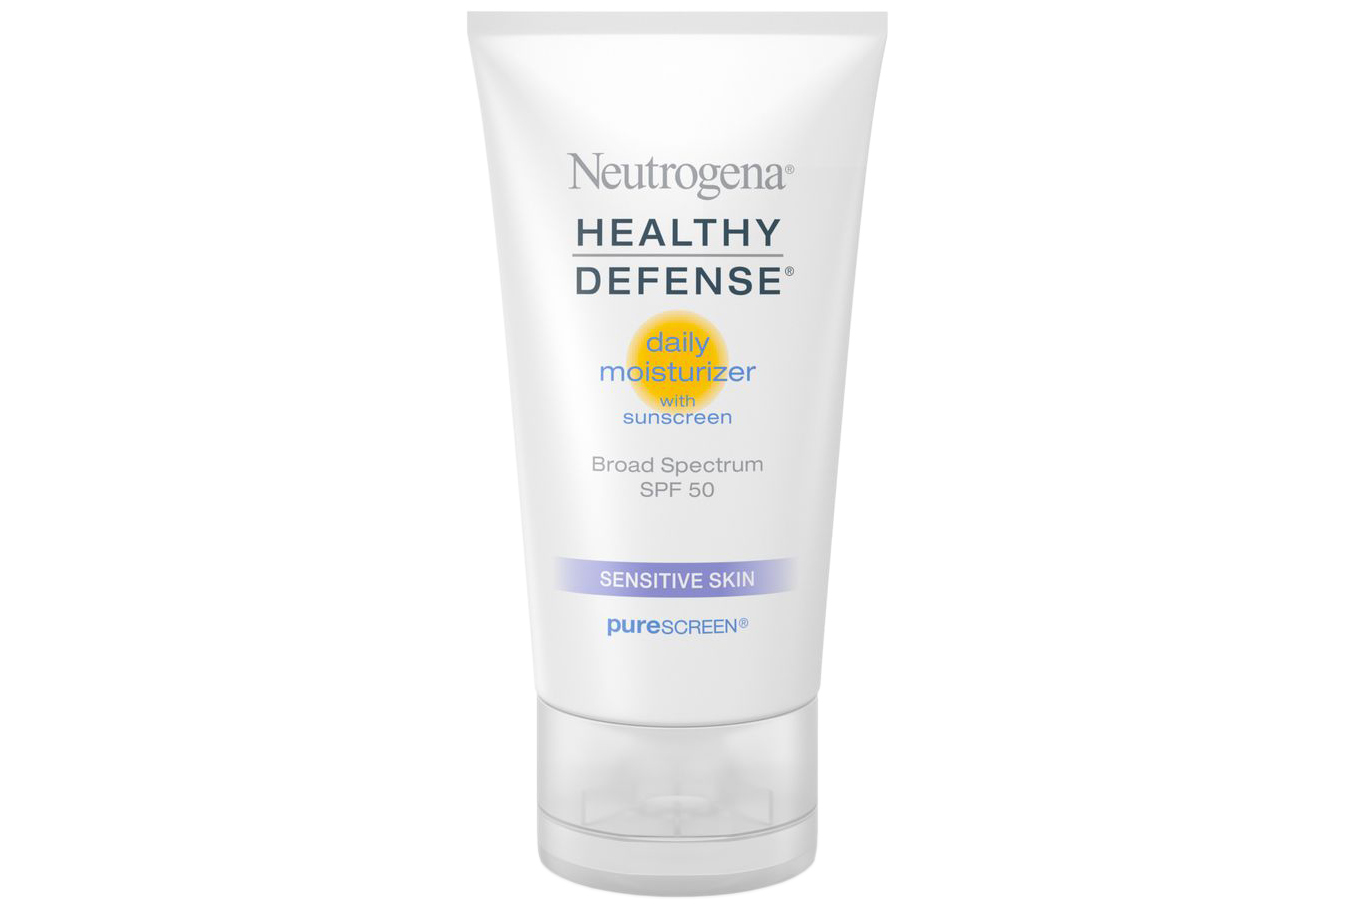 Neutrogena Healthy Defense Daily Moisturizer with Sunscreen SPF 50